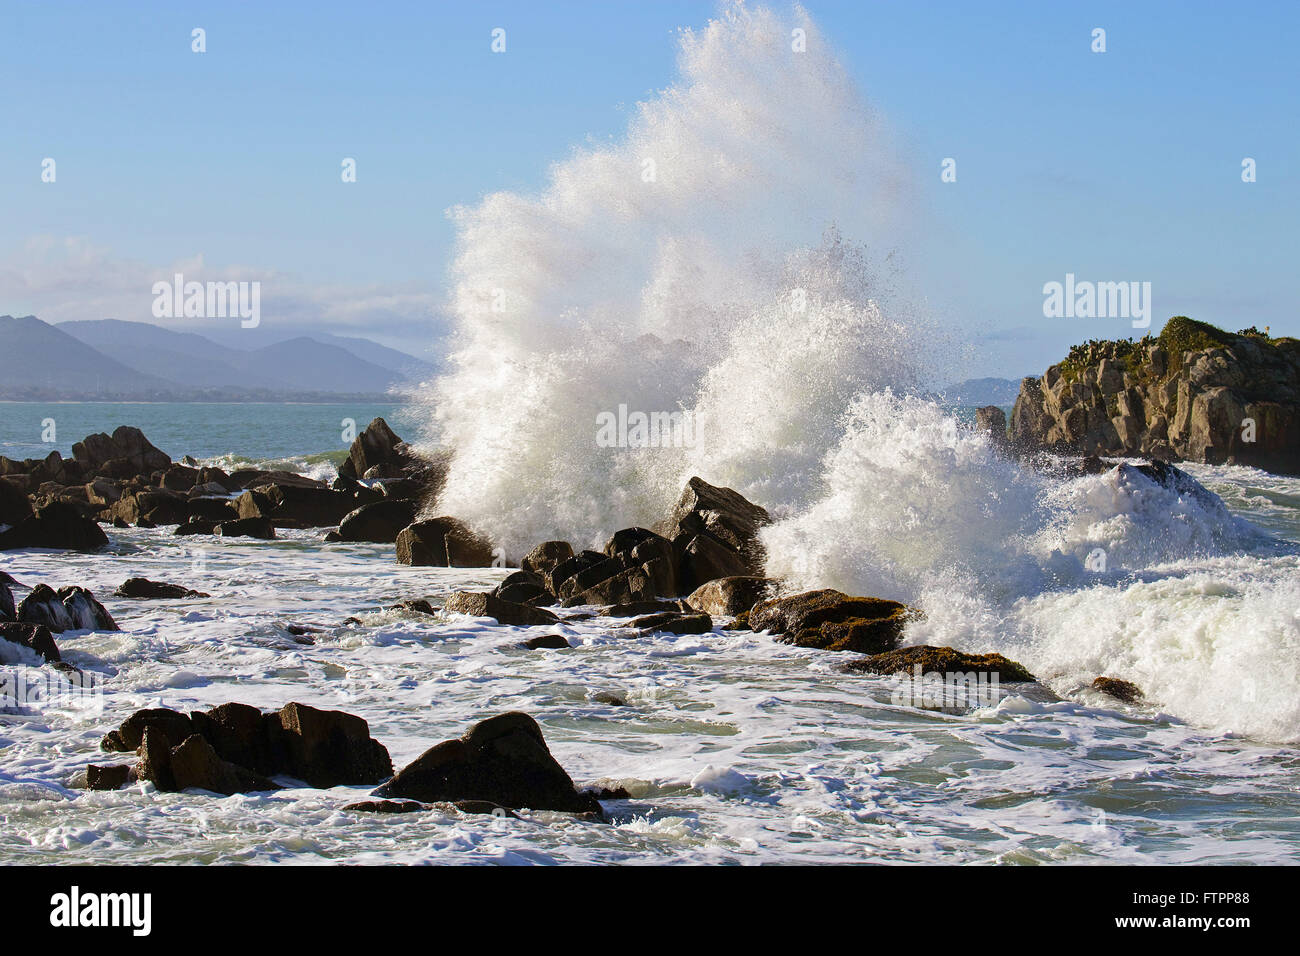 Ocean waves crashing on the rocks of the beach Armacao - south of the island - Stock Image